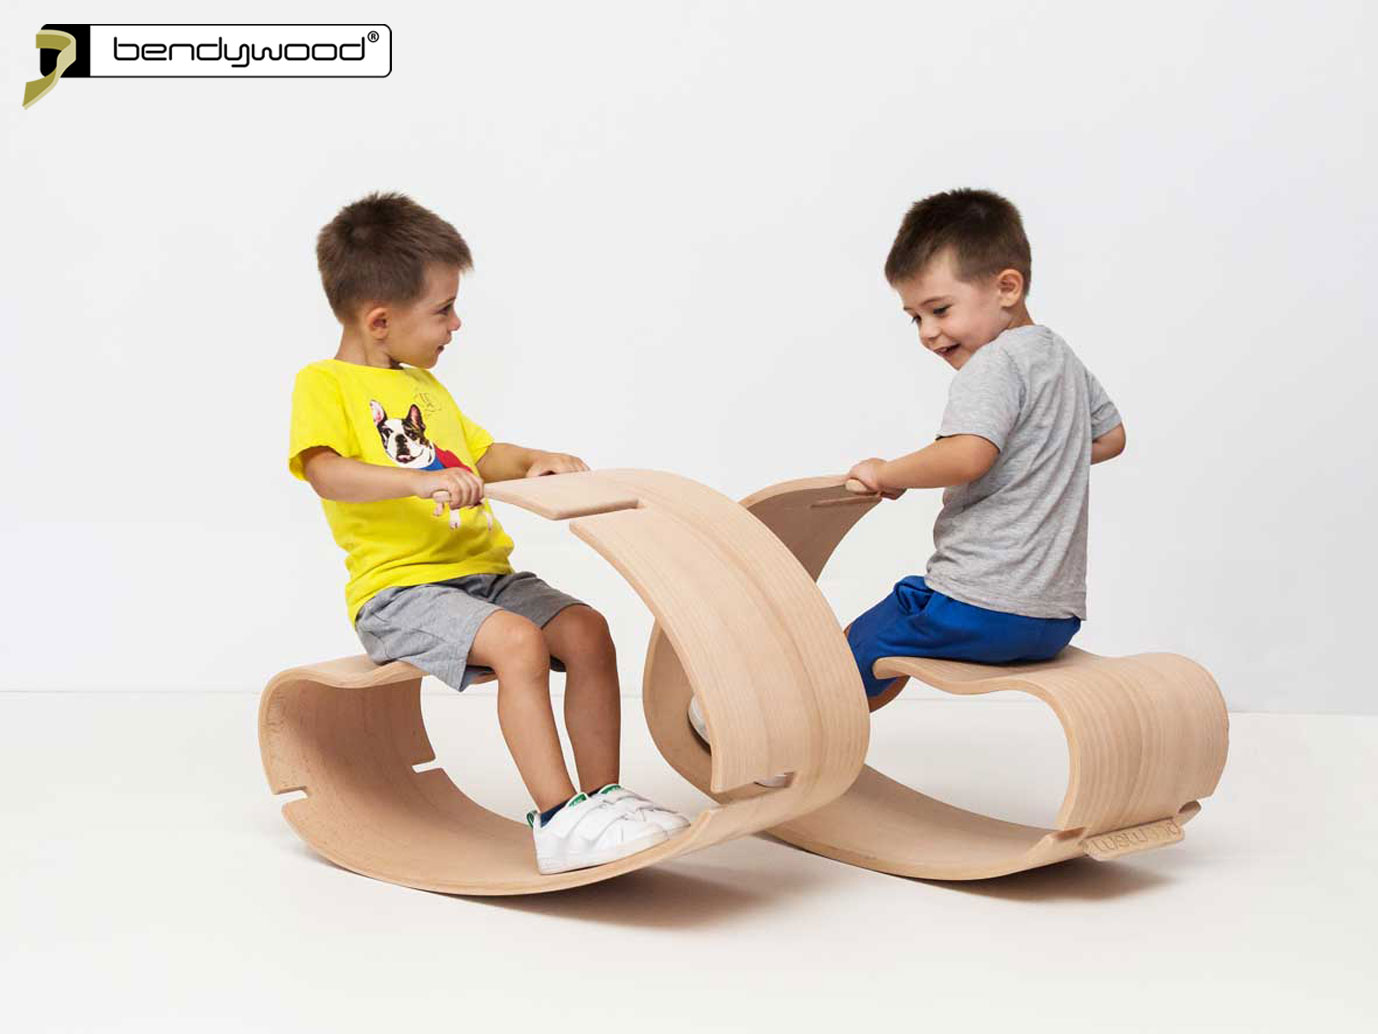 Seesaw rocker for children in Bendywood®